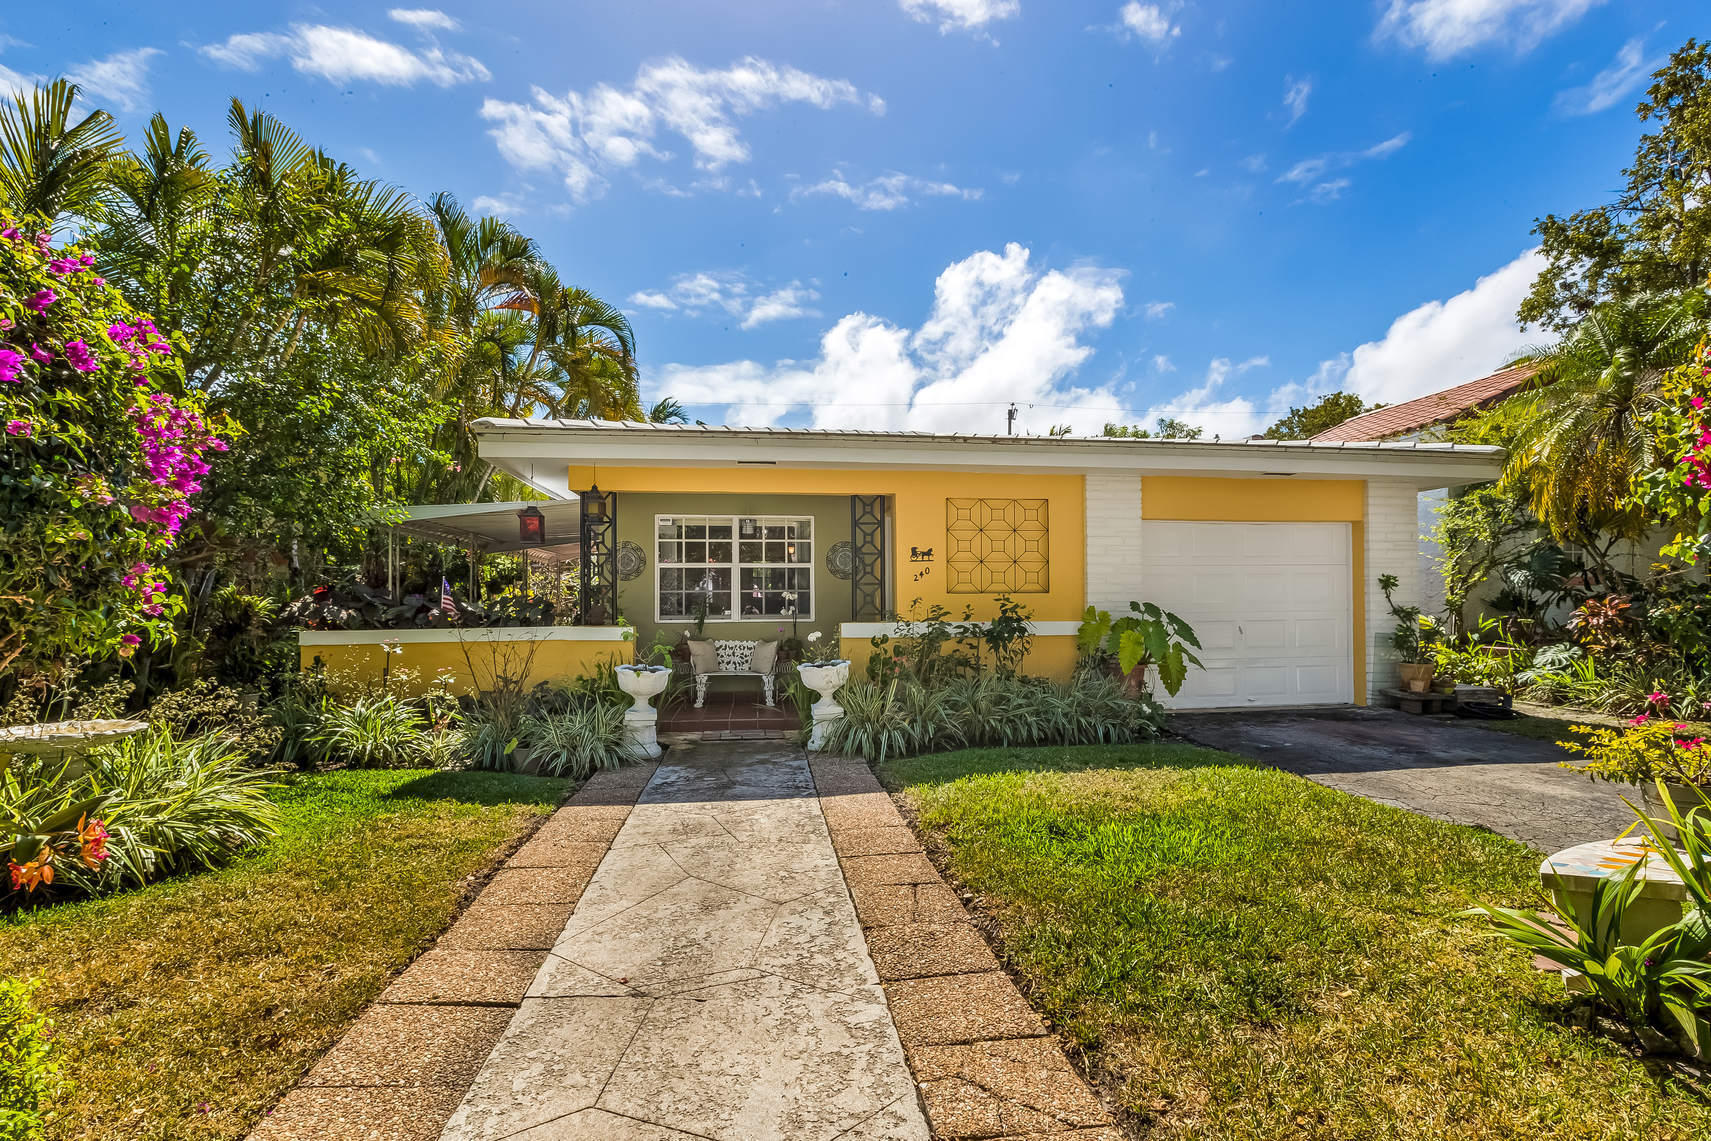 Home for sale in Coconut Grove Coral Gables Florida